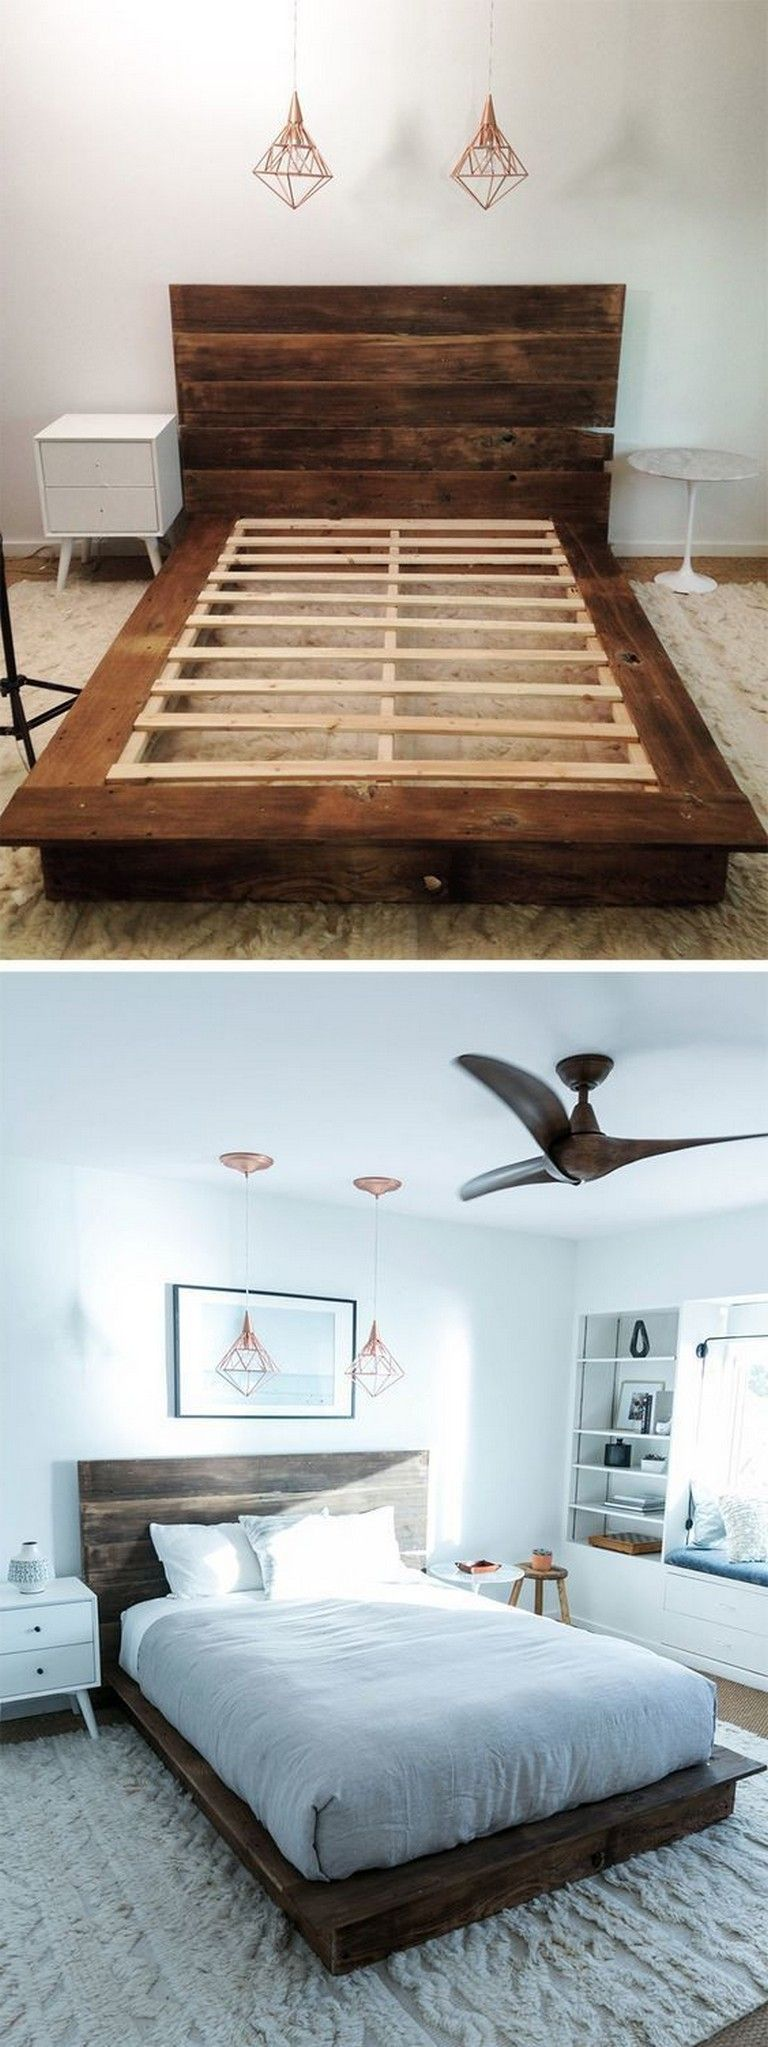 5+ Amazing Multi Purpose DIY Platform Beds That Anyone Can